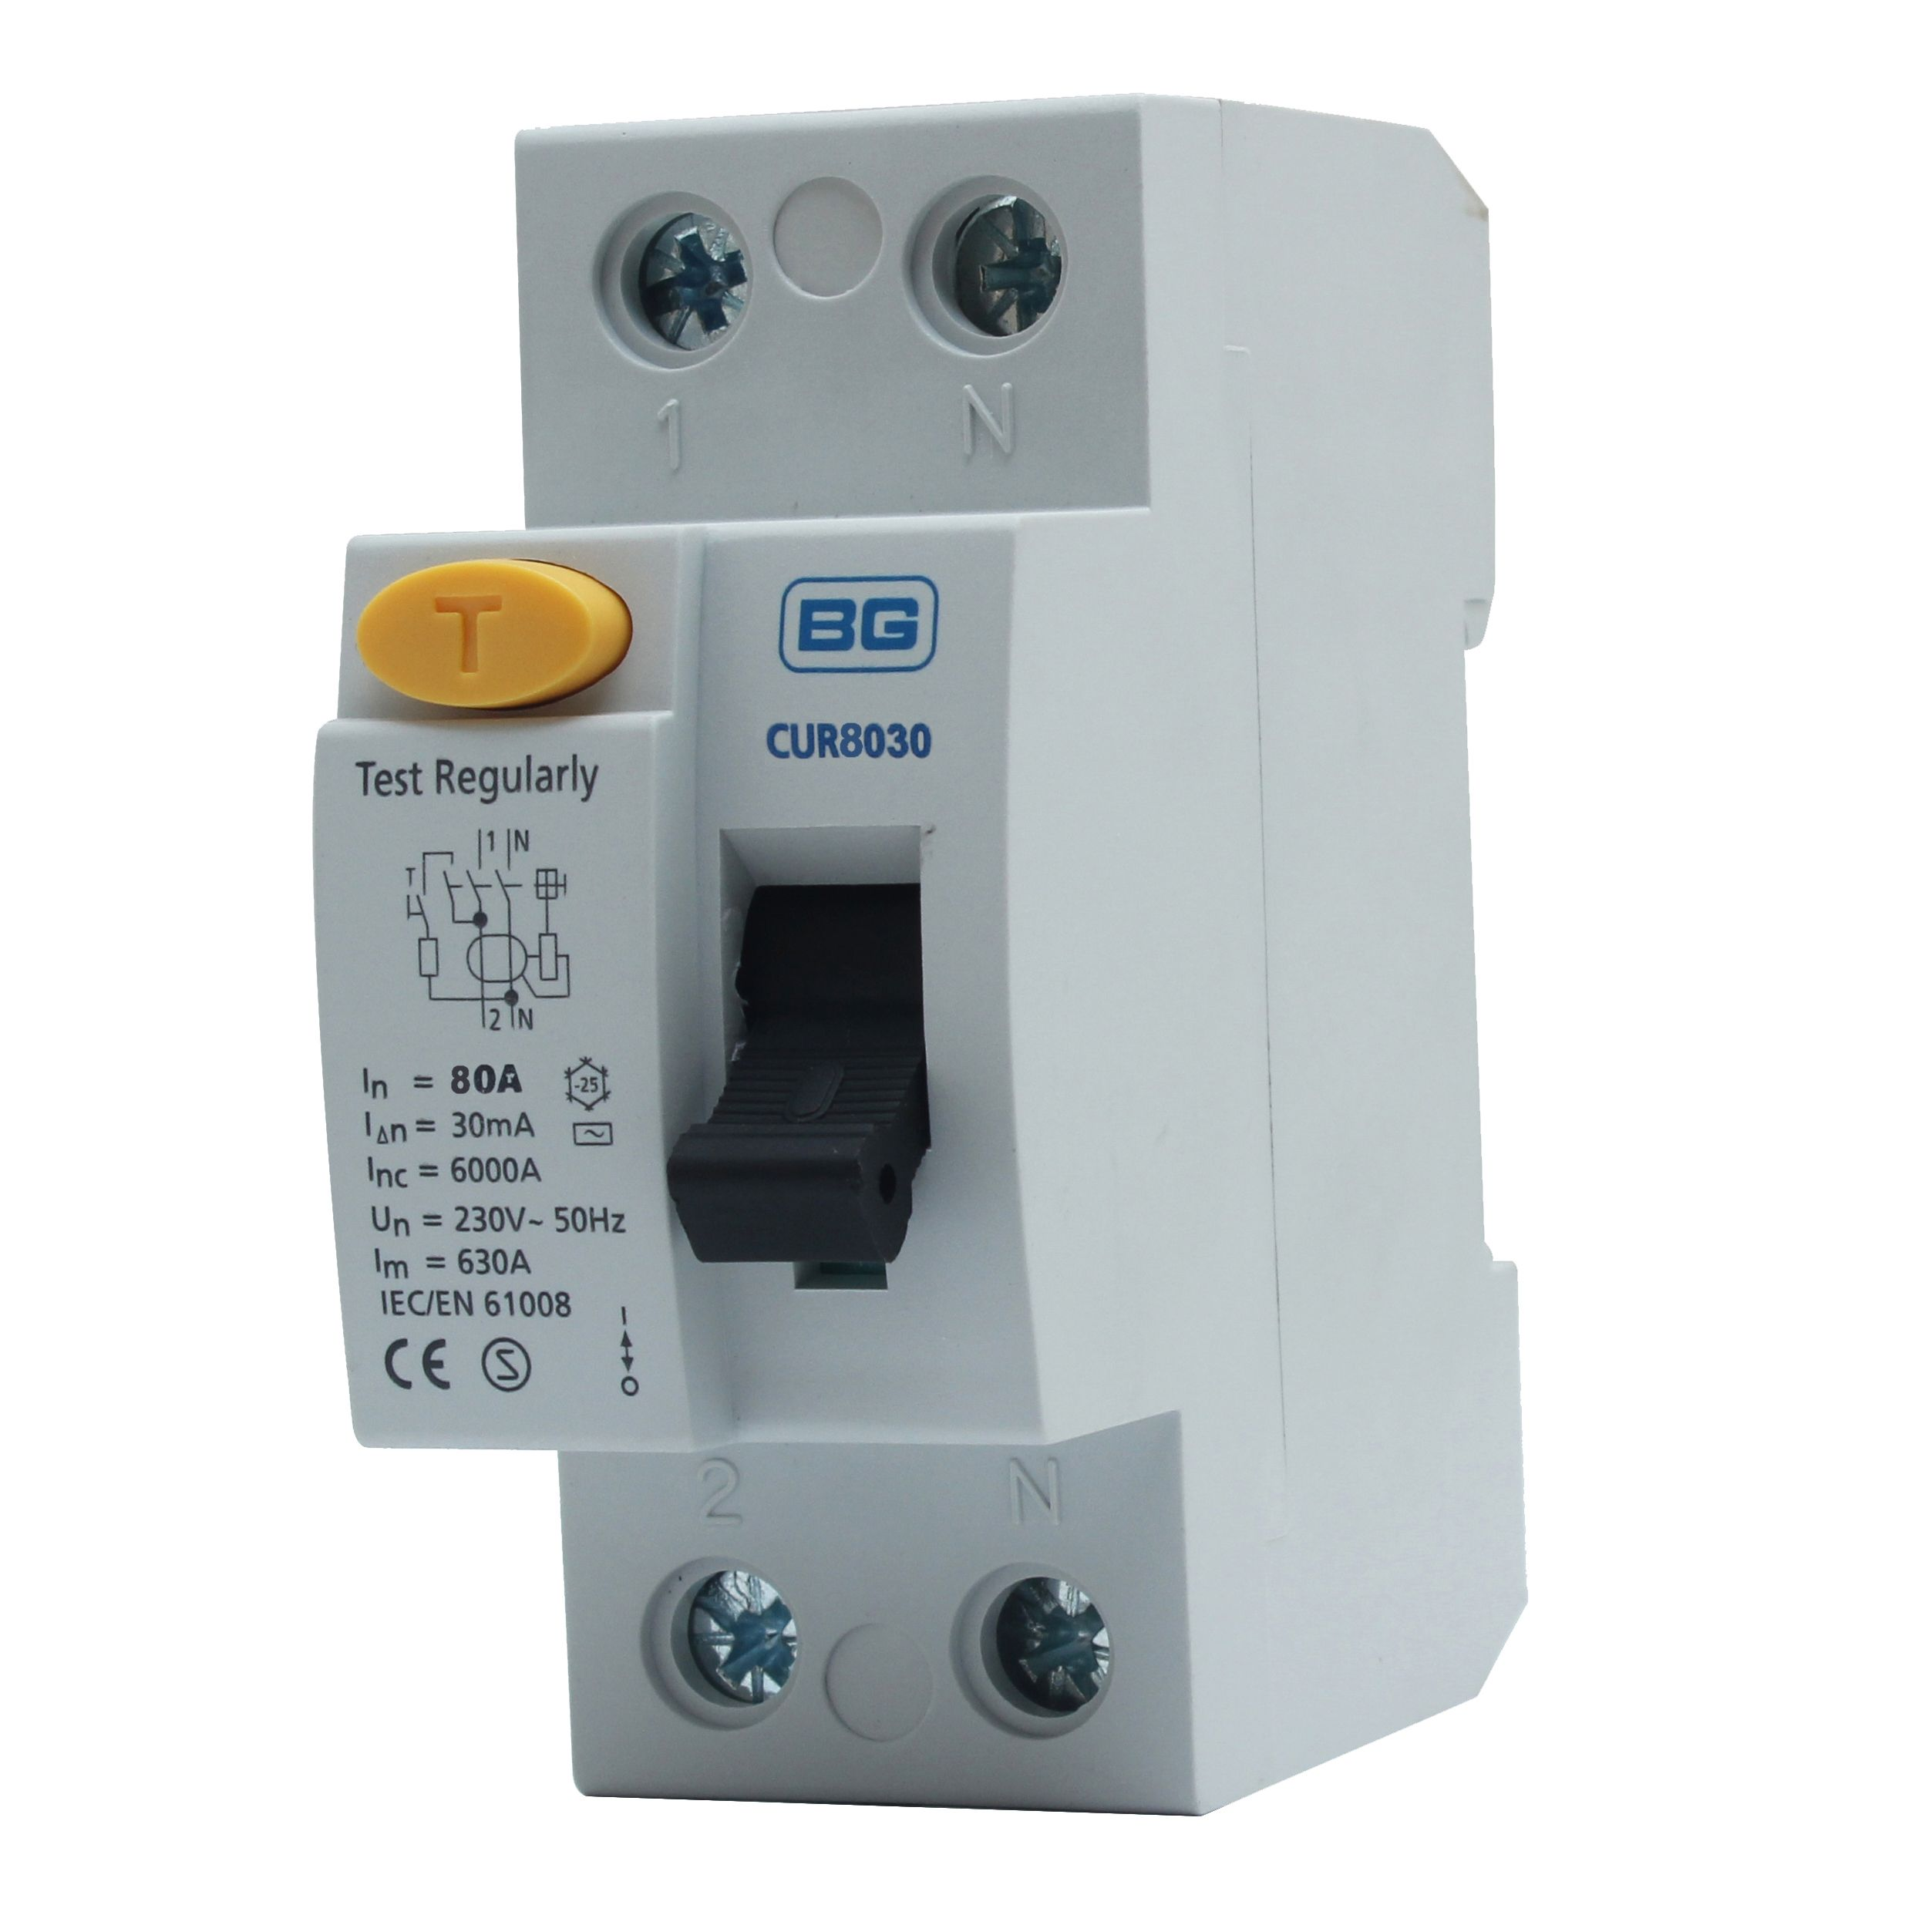 Bg 80a double pole 230 400v 30ma rcd departments diy at b&q on rcd mcb wiring diagram Electronic Device Furniture Motor Starter Wiring Diagram